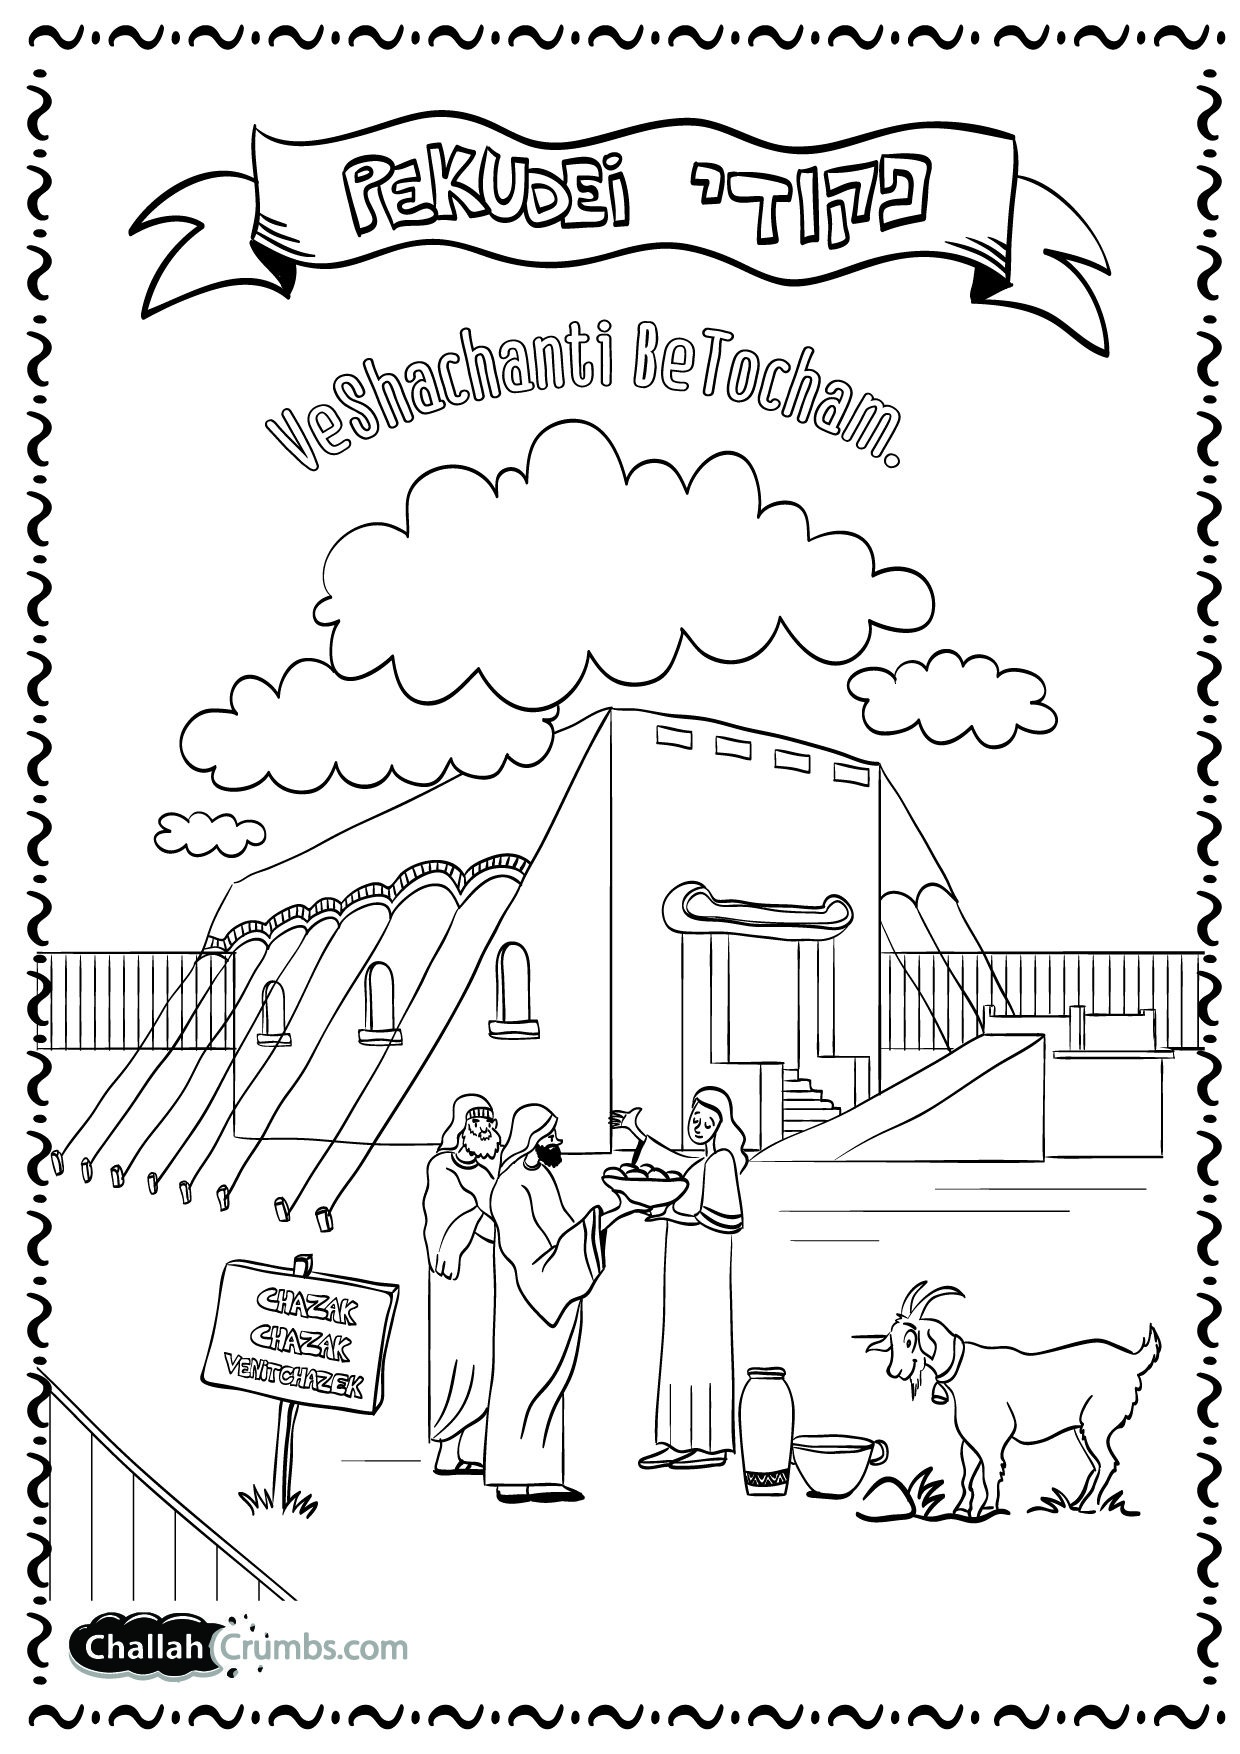 Image Result For Tabernacle Printable Pictures   Shabbat School - Free Printable Pictures Of The Tabernacle